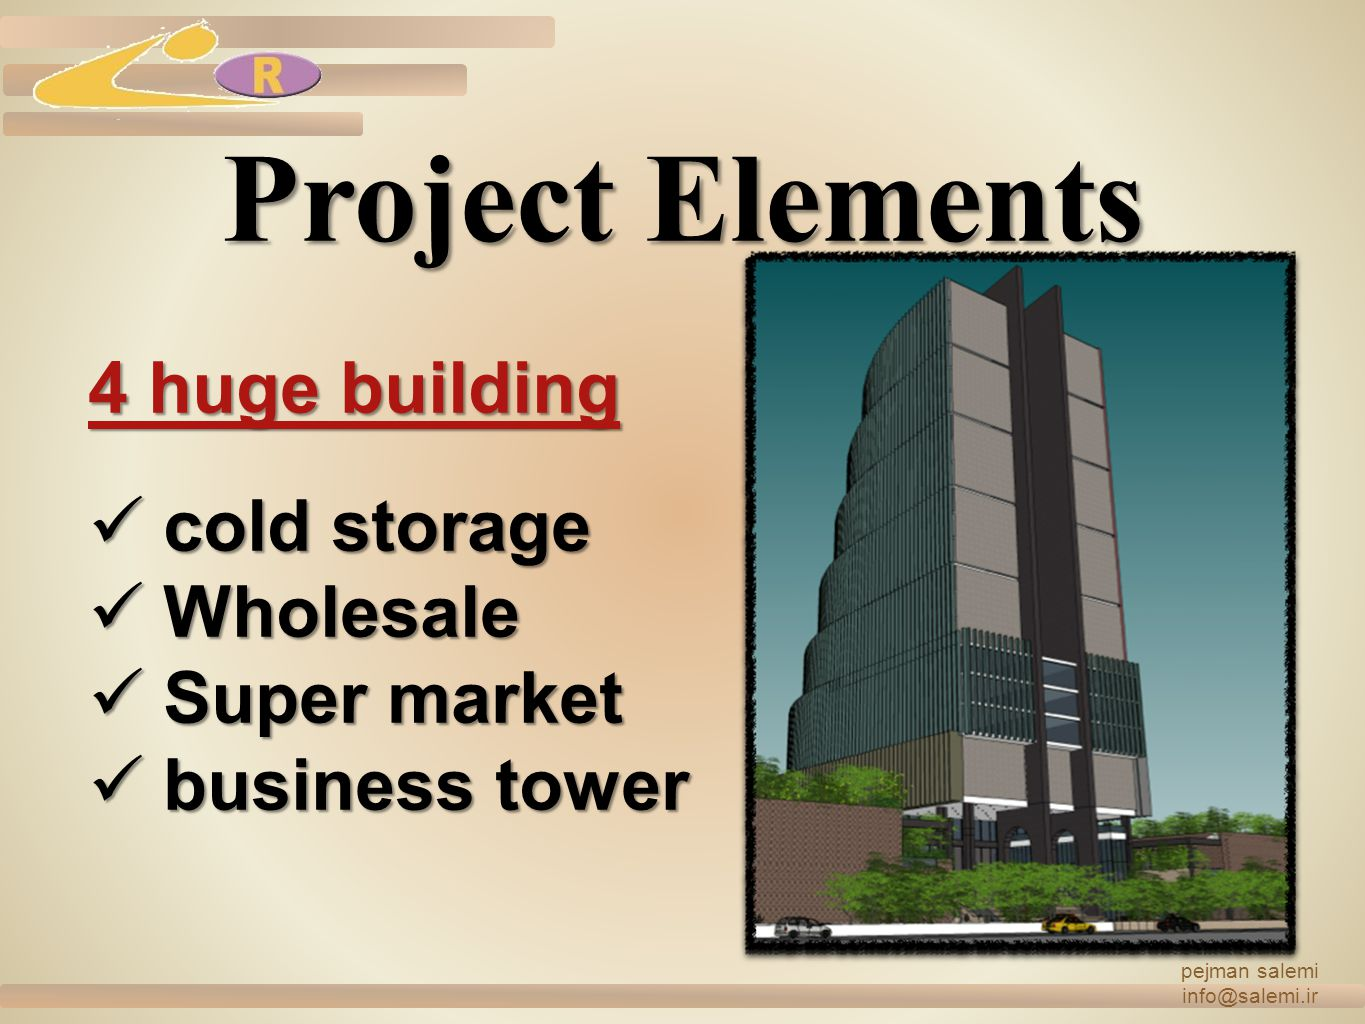 Project Elements 4 huge building cold storage Wholesale Super market